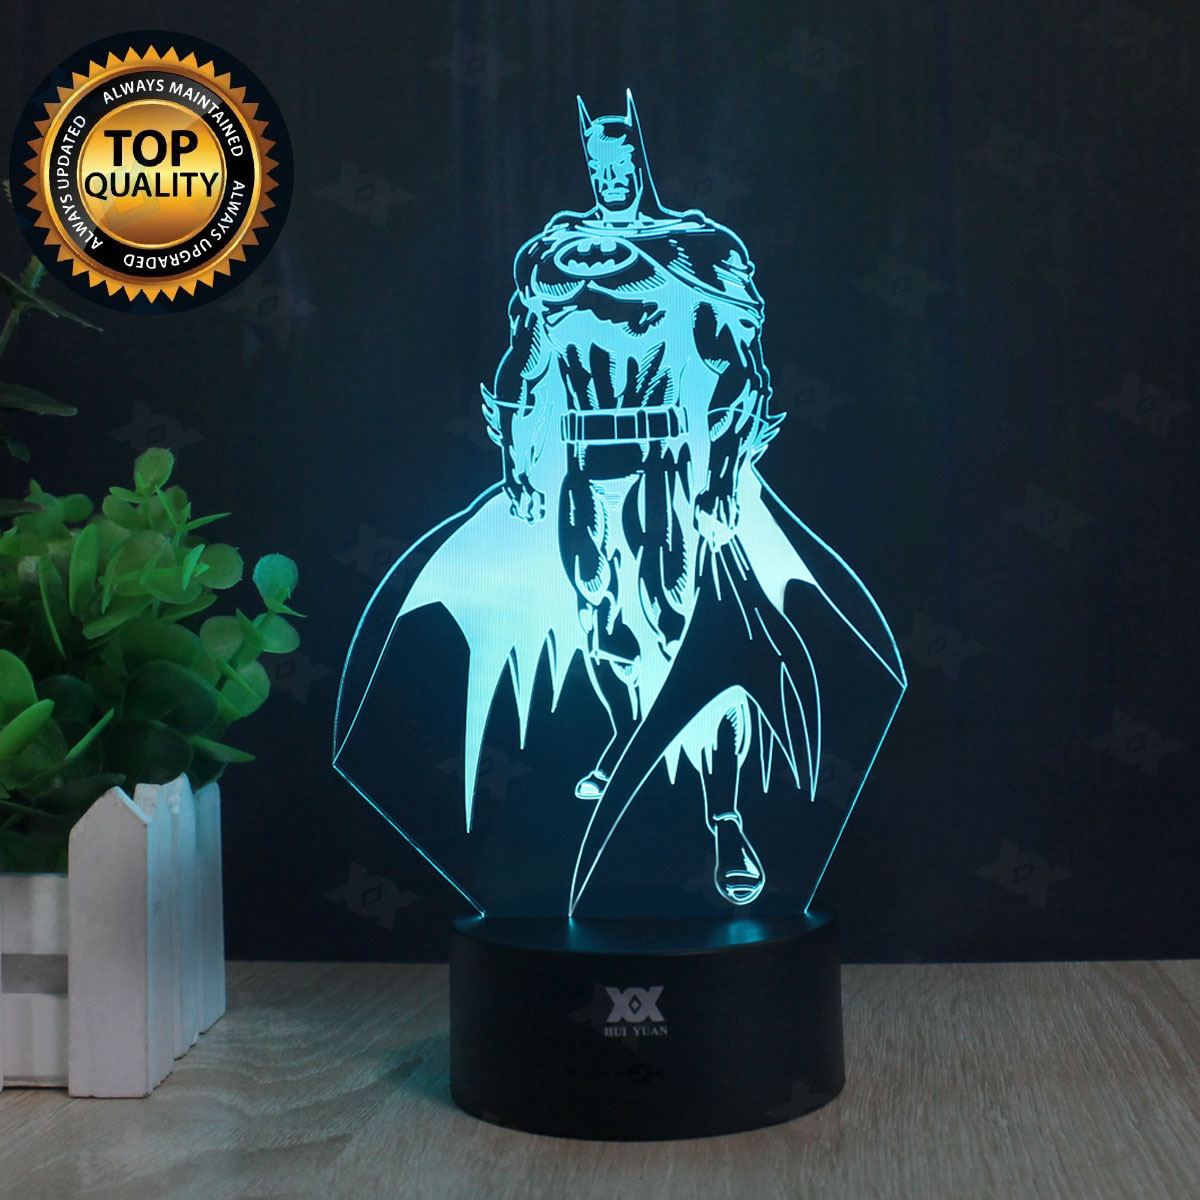 Led Touch Lampe. Best D Chrismas Decorate Led Touch Night Light ...